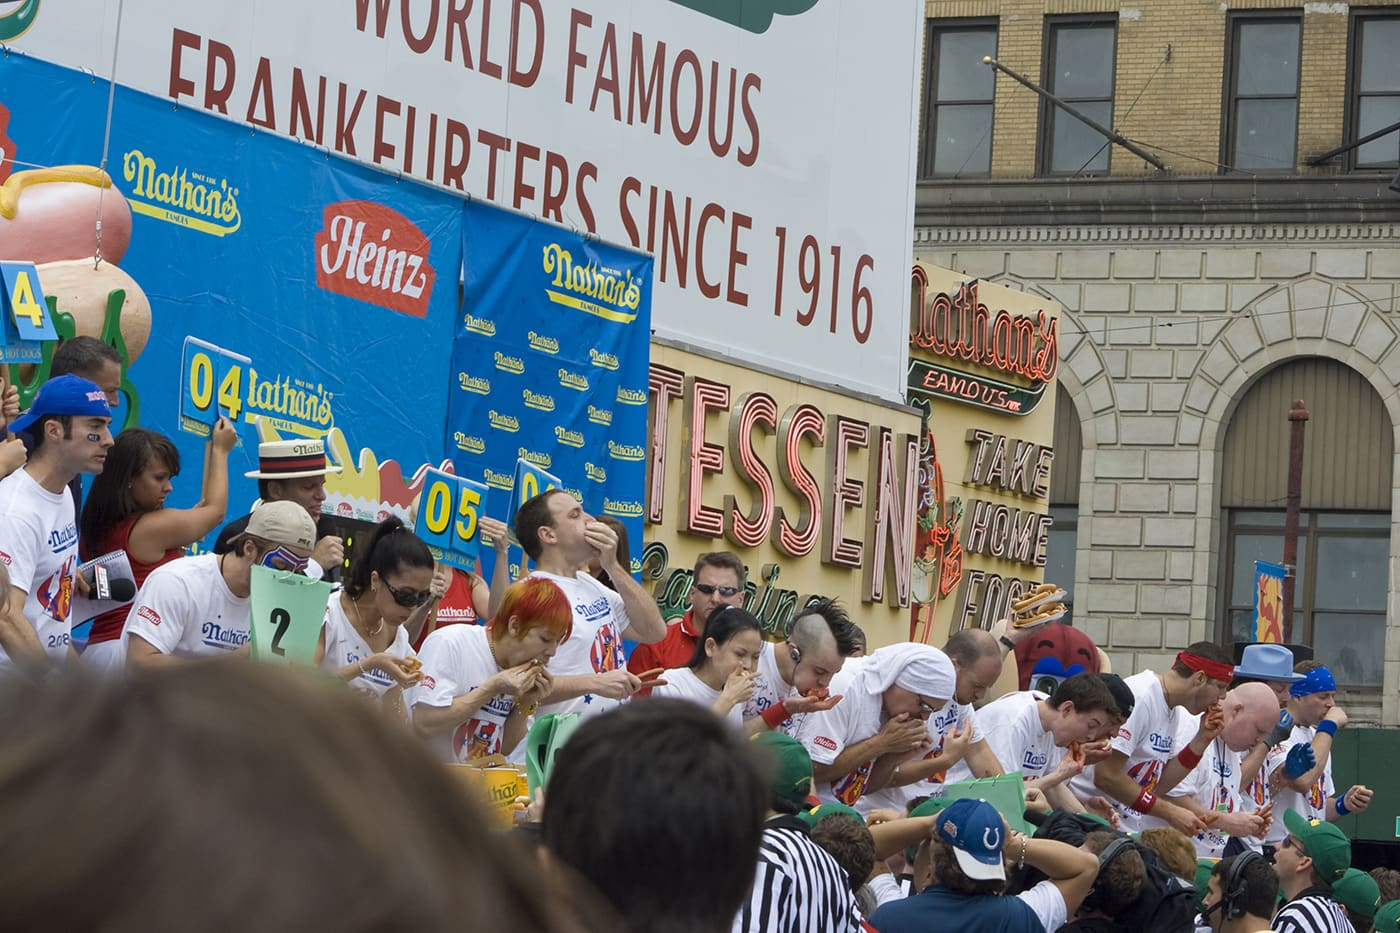 2008 Nathan's Famous Fourth of July hot dog eating contest at Coney Island in New York.